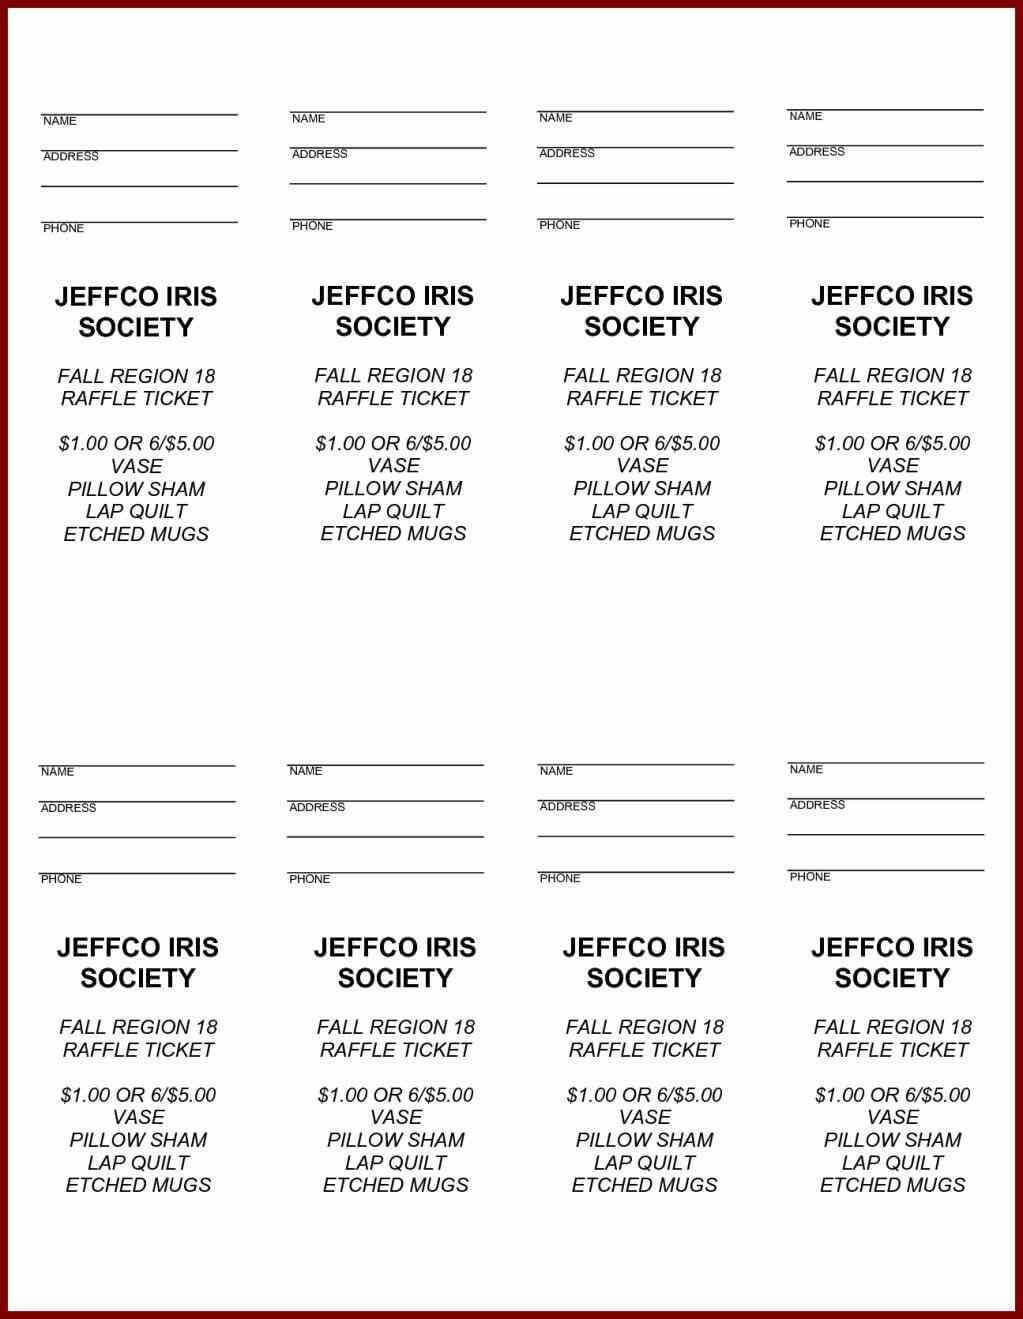 30 Sample Raffle Tickets Template | Andaluzseattle Template Intended For Free Raffle Ticket Template For Word